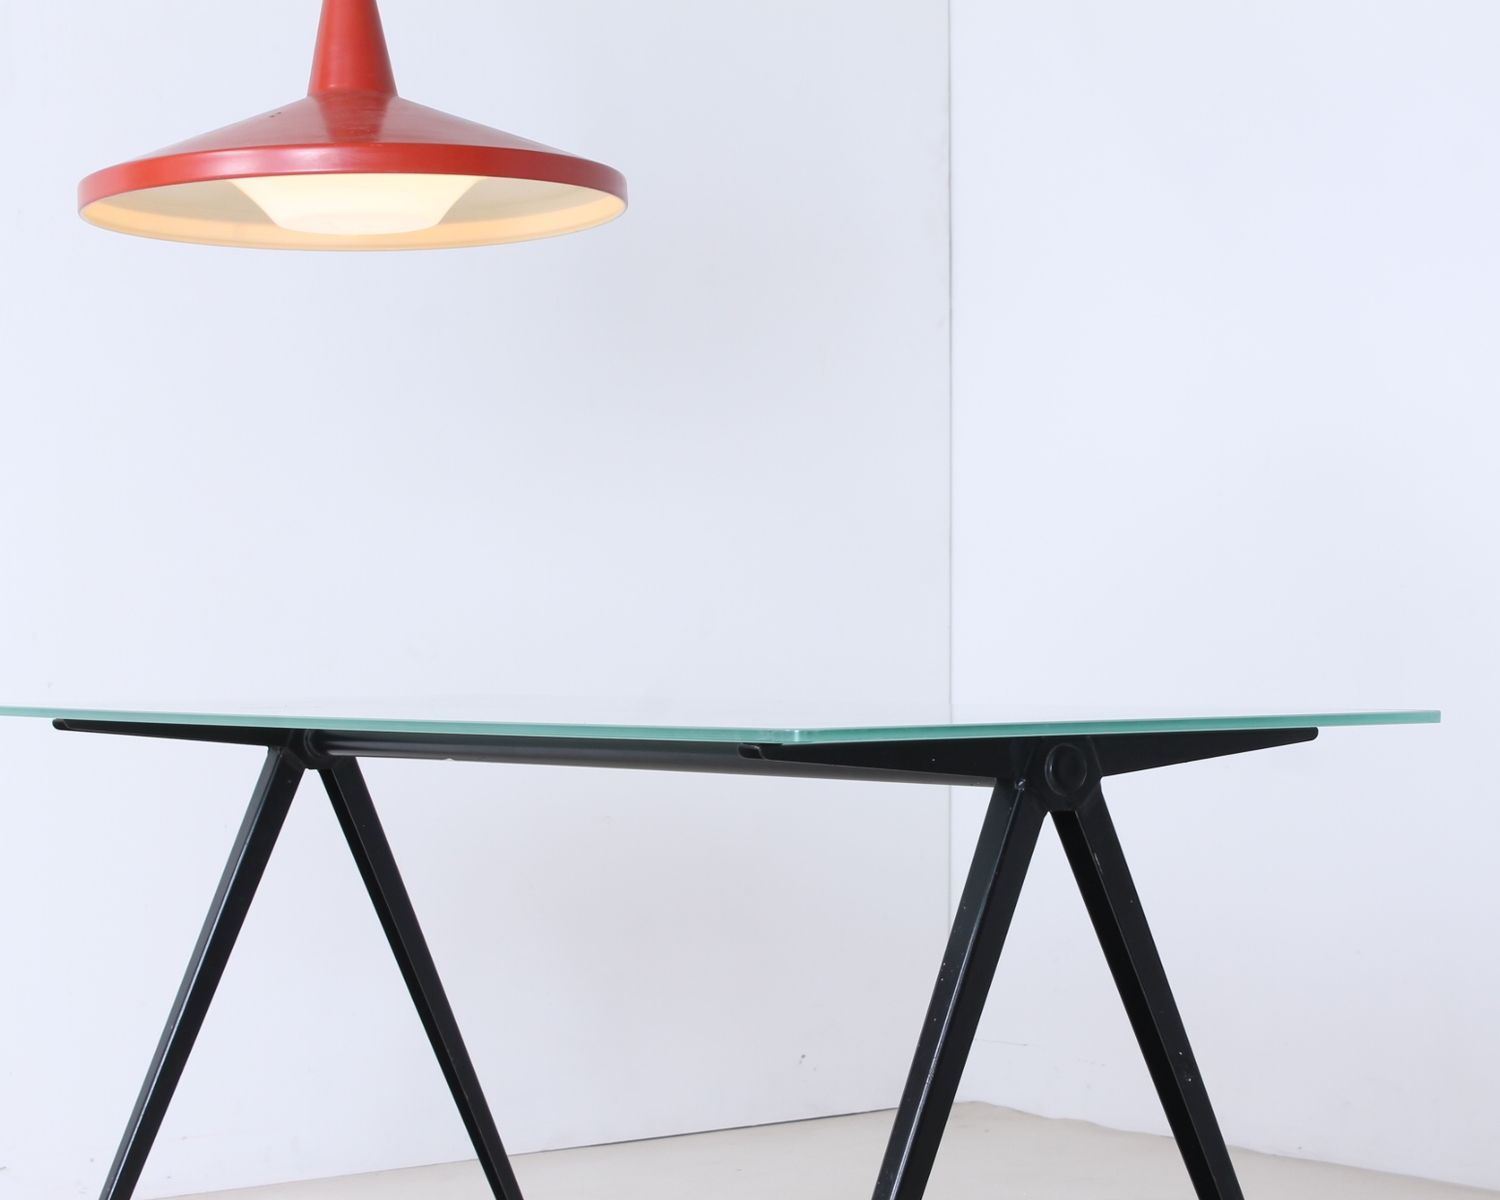 Black Compass Pyramid Base Coffee Table From Marko 1960s For Sale At Pamono